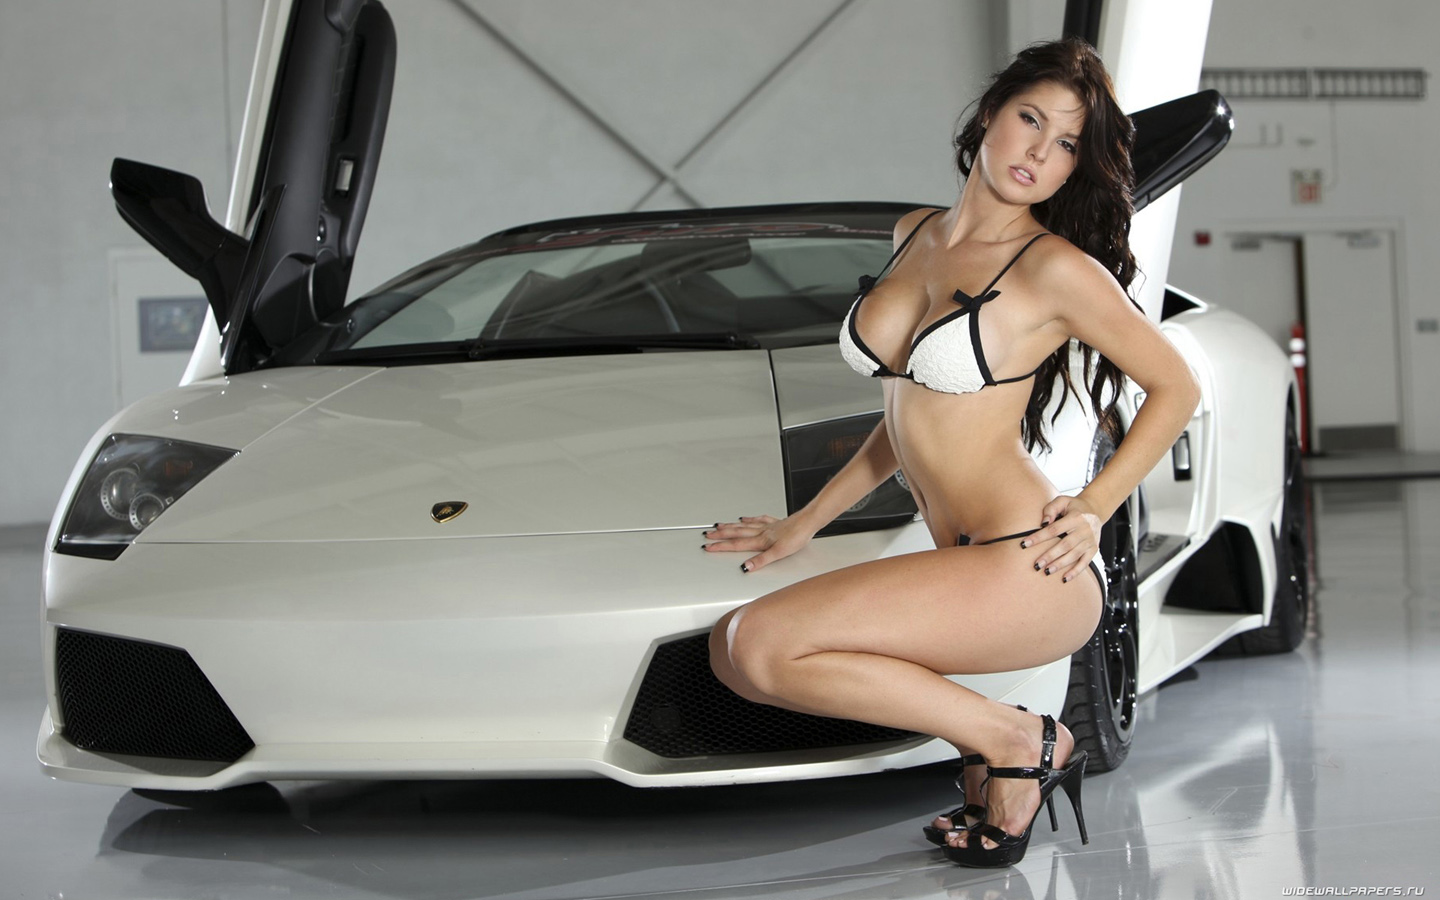 Lamborghini Gallardo Ridingirls